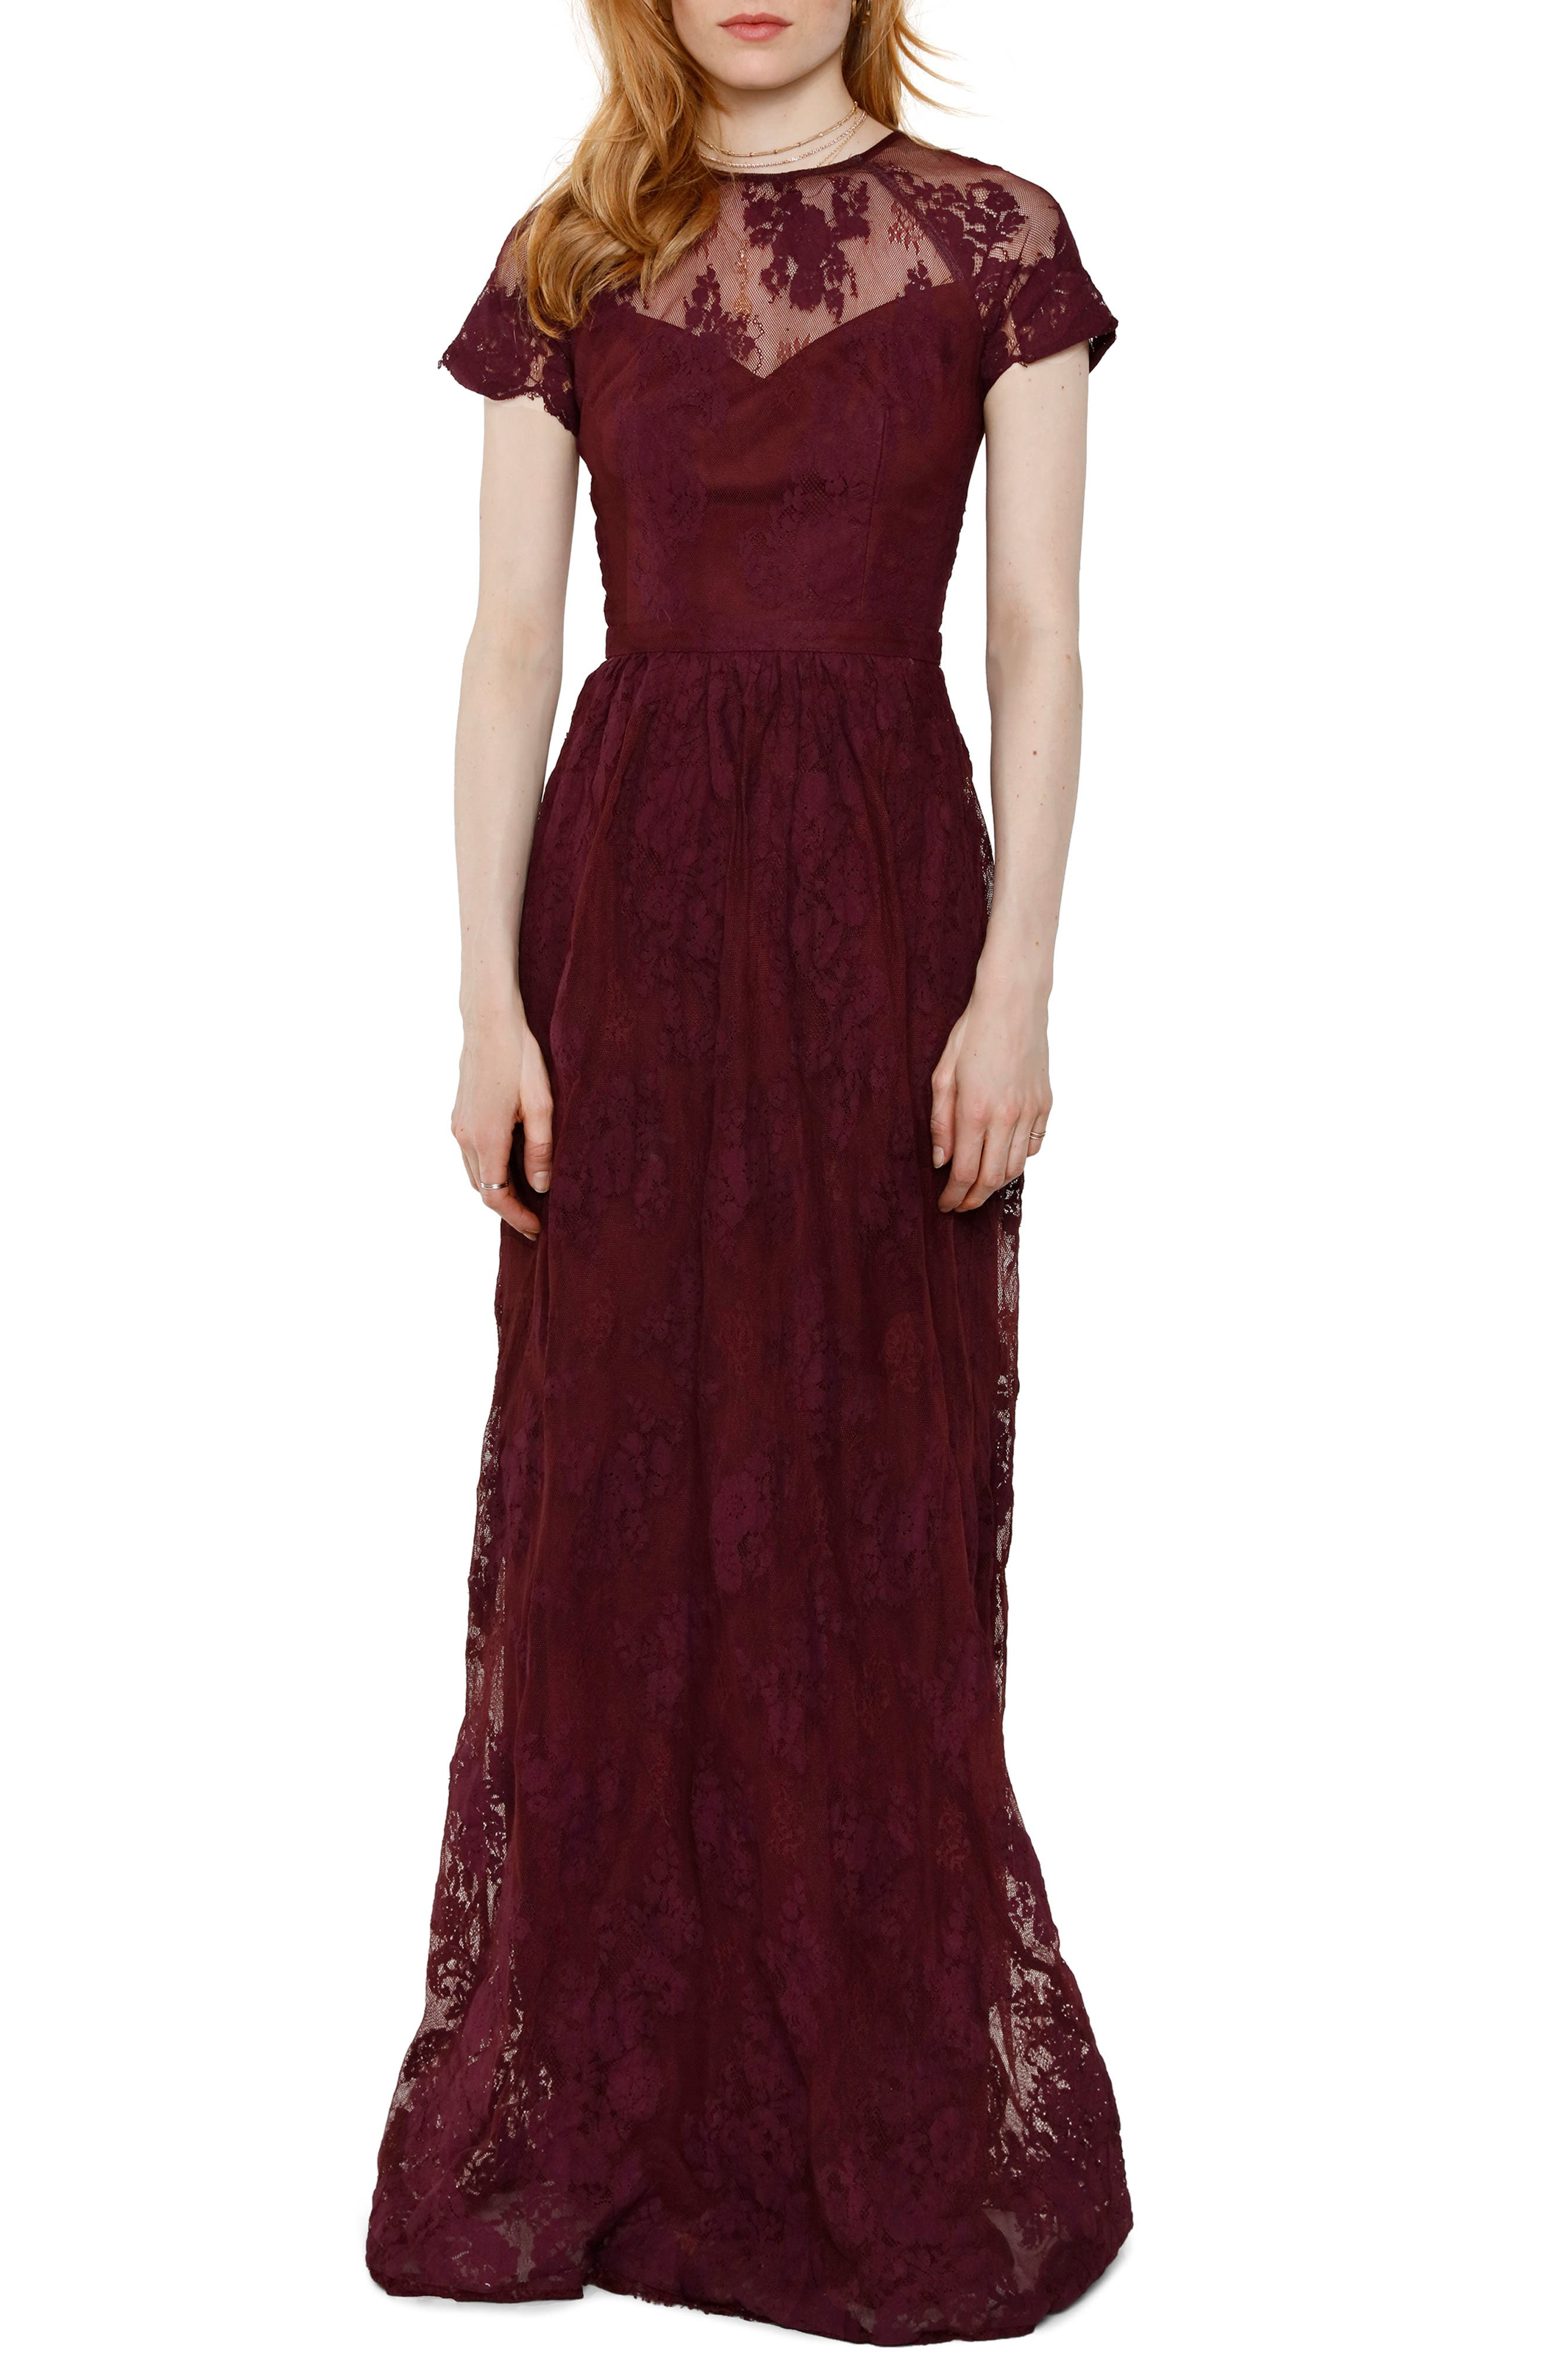 Heartloom Josie Lace Gown, Burgundy